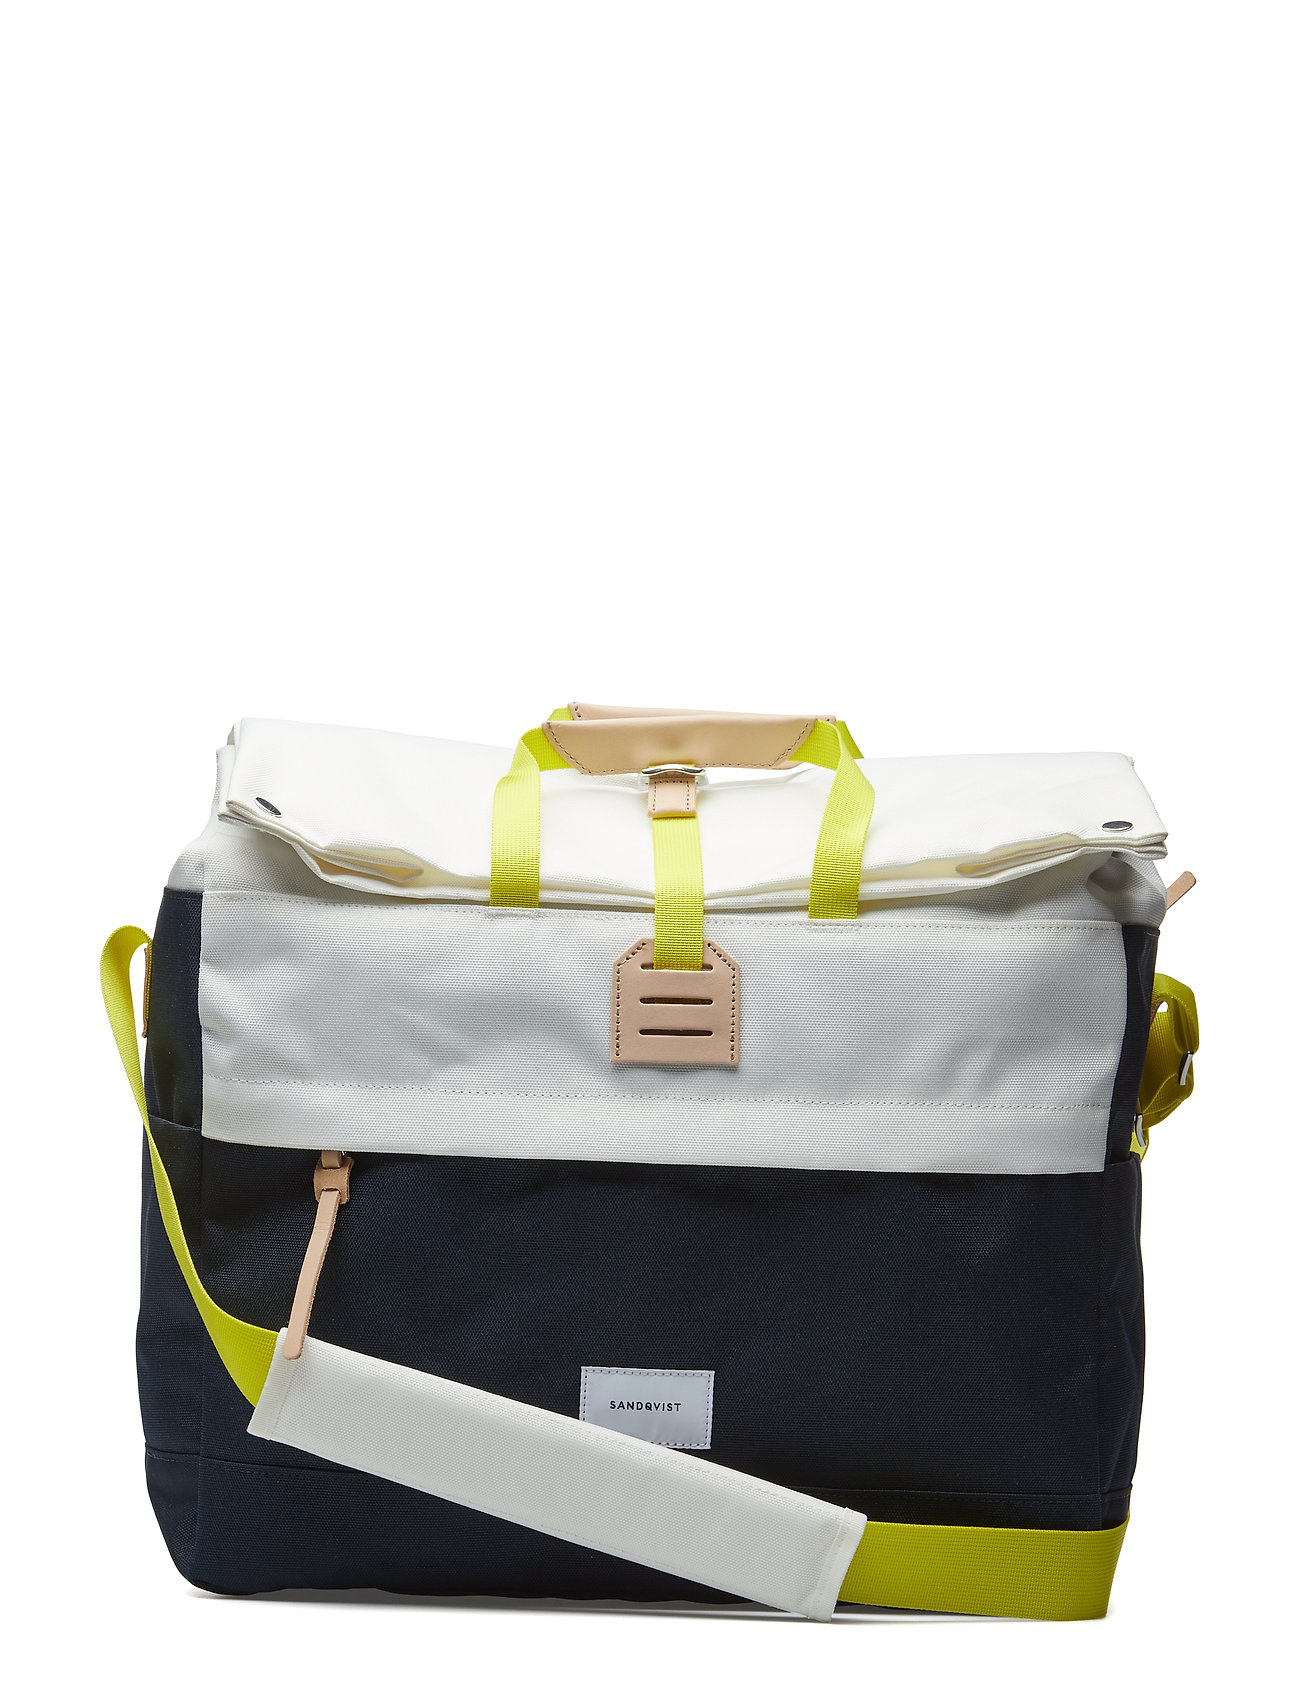 SANDQVIST TOR - MULTI OFF WHITE / BLUE WITH NATURAL LEATHER